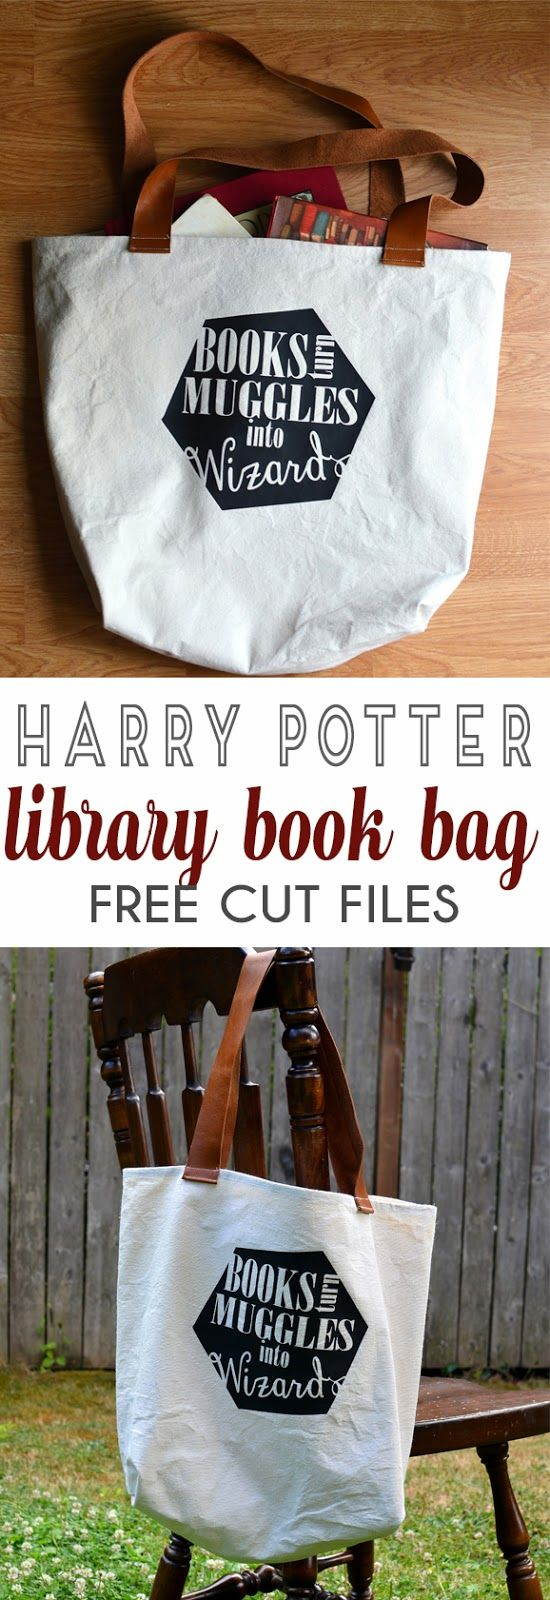 Harry Potter Bag for library book bag sewing tutorial and free cut files for cricut and silhouette